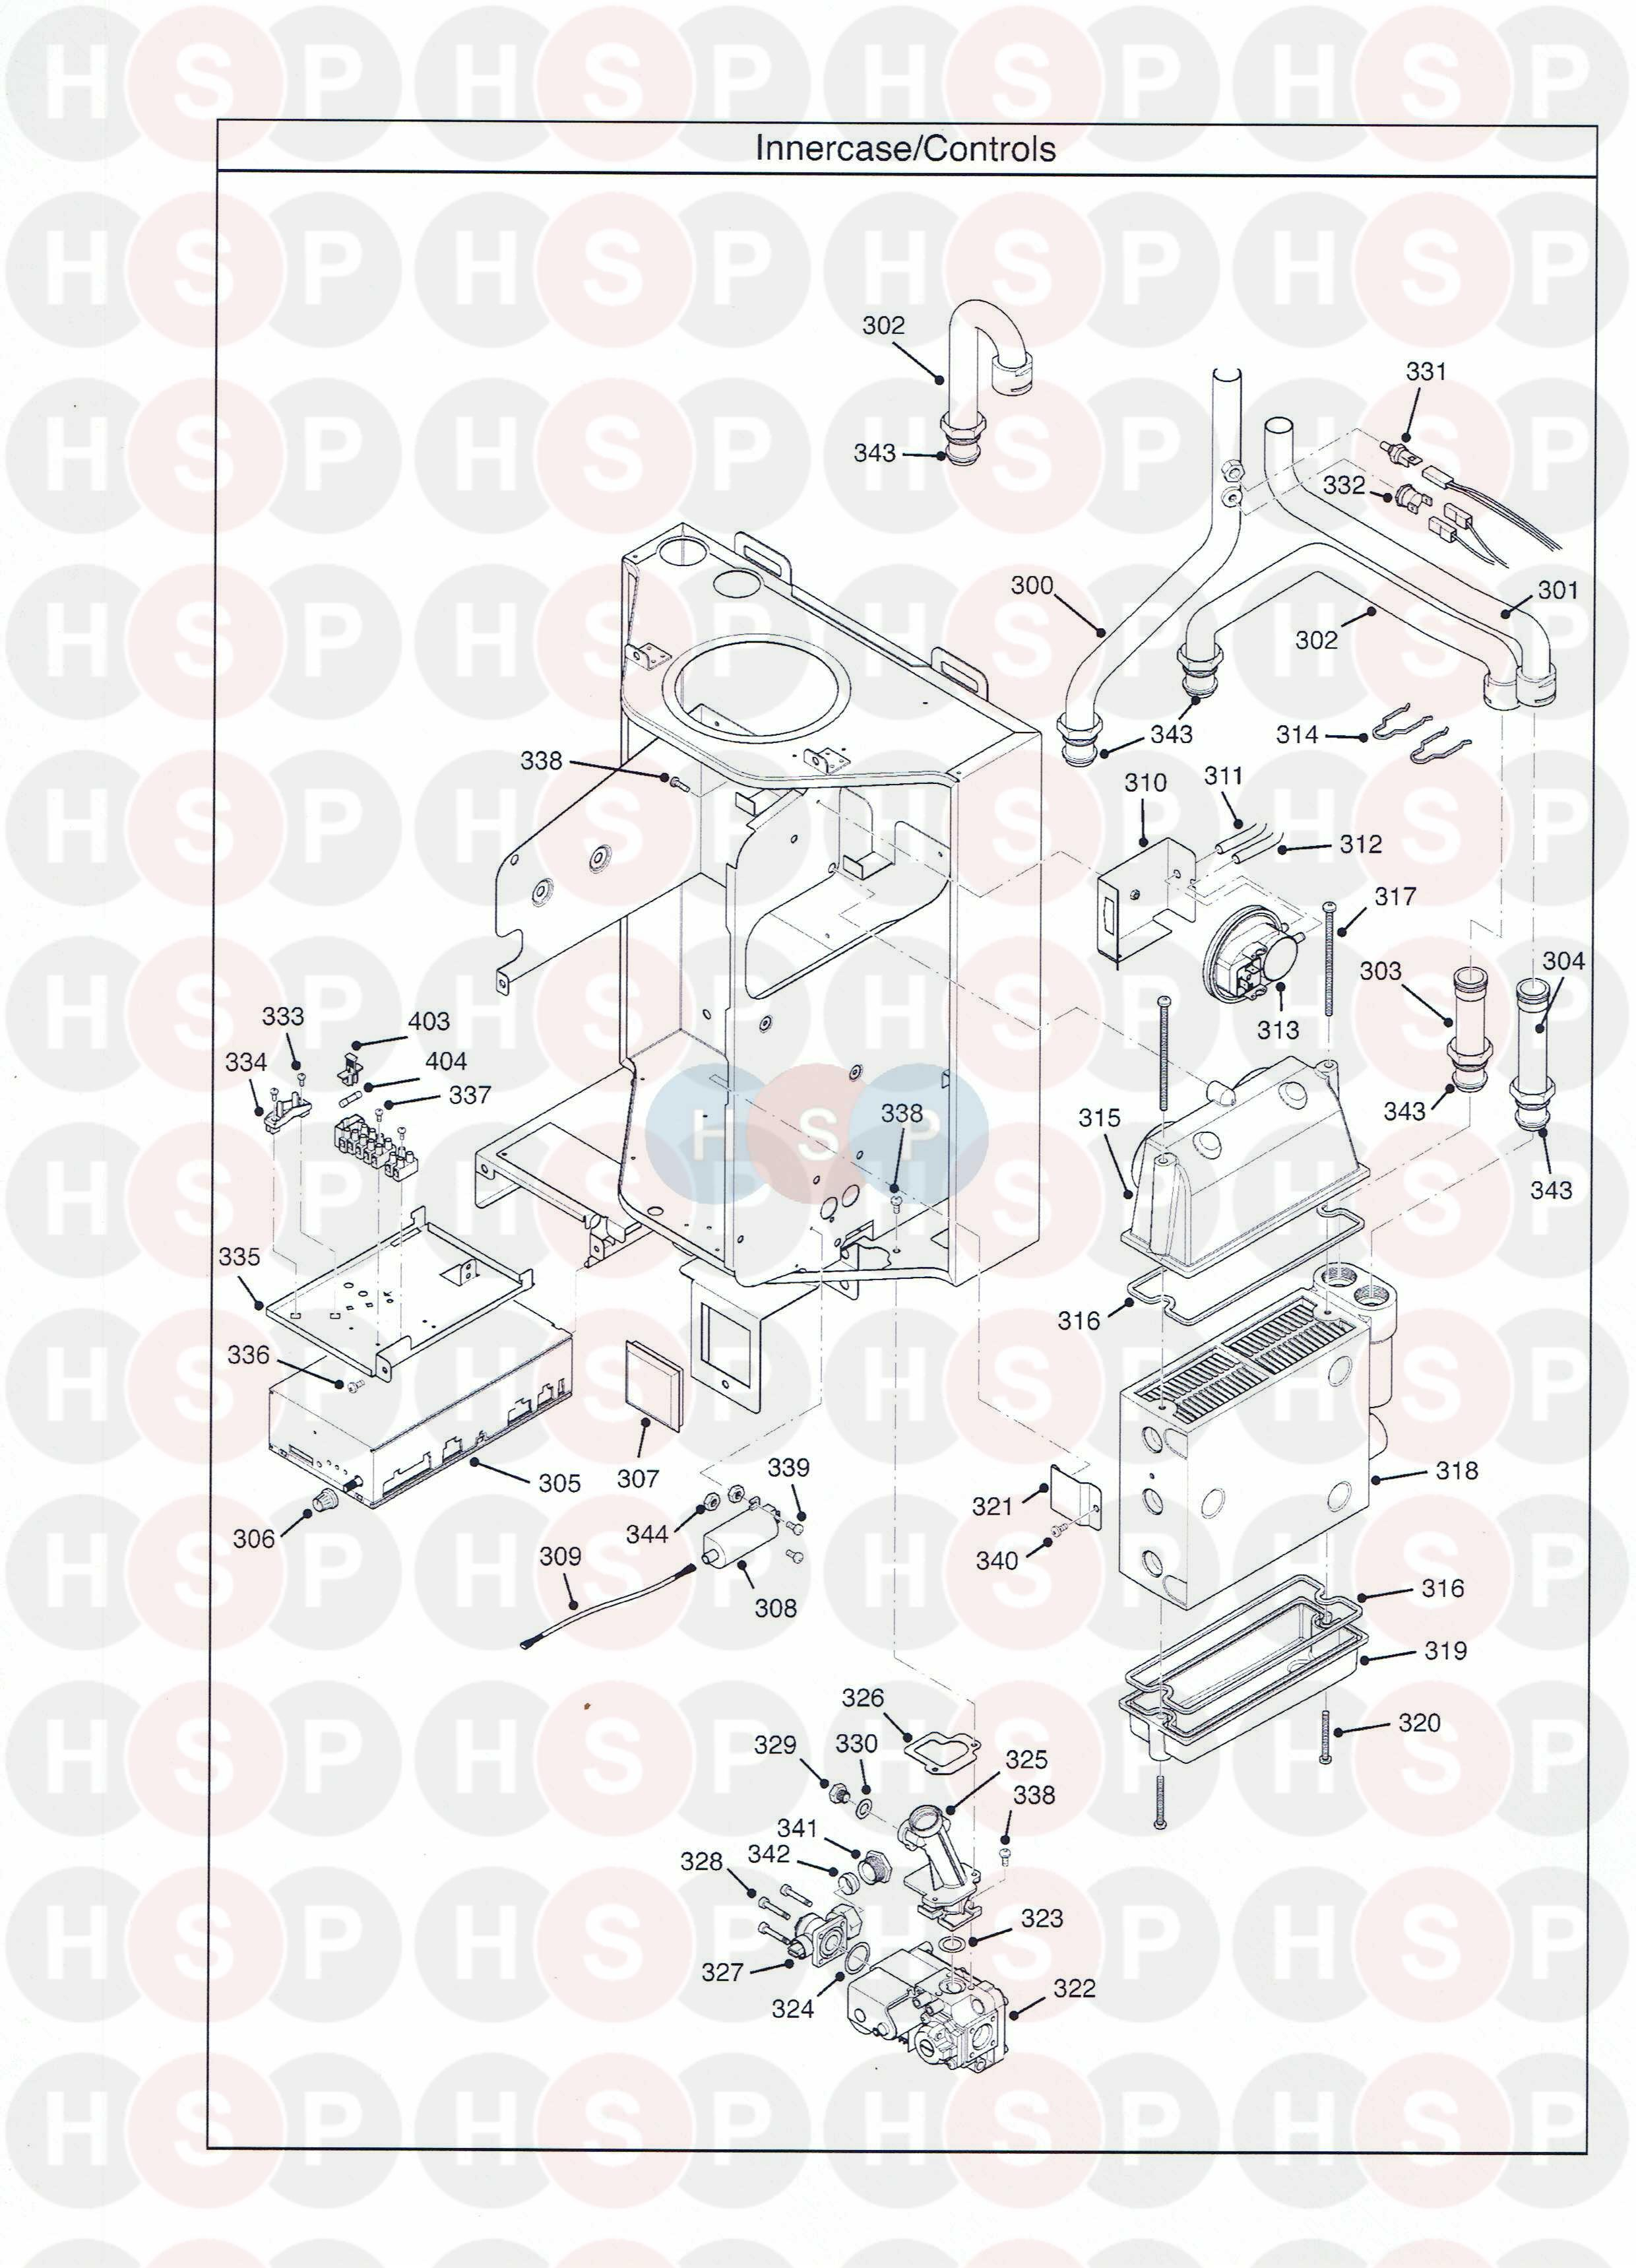 Cut Out Fuse Box Auto Electrical Wiring Diagram 67 Camaro Rs Limit Switch For Puma Air Pressor Inverter